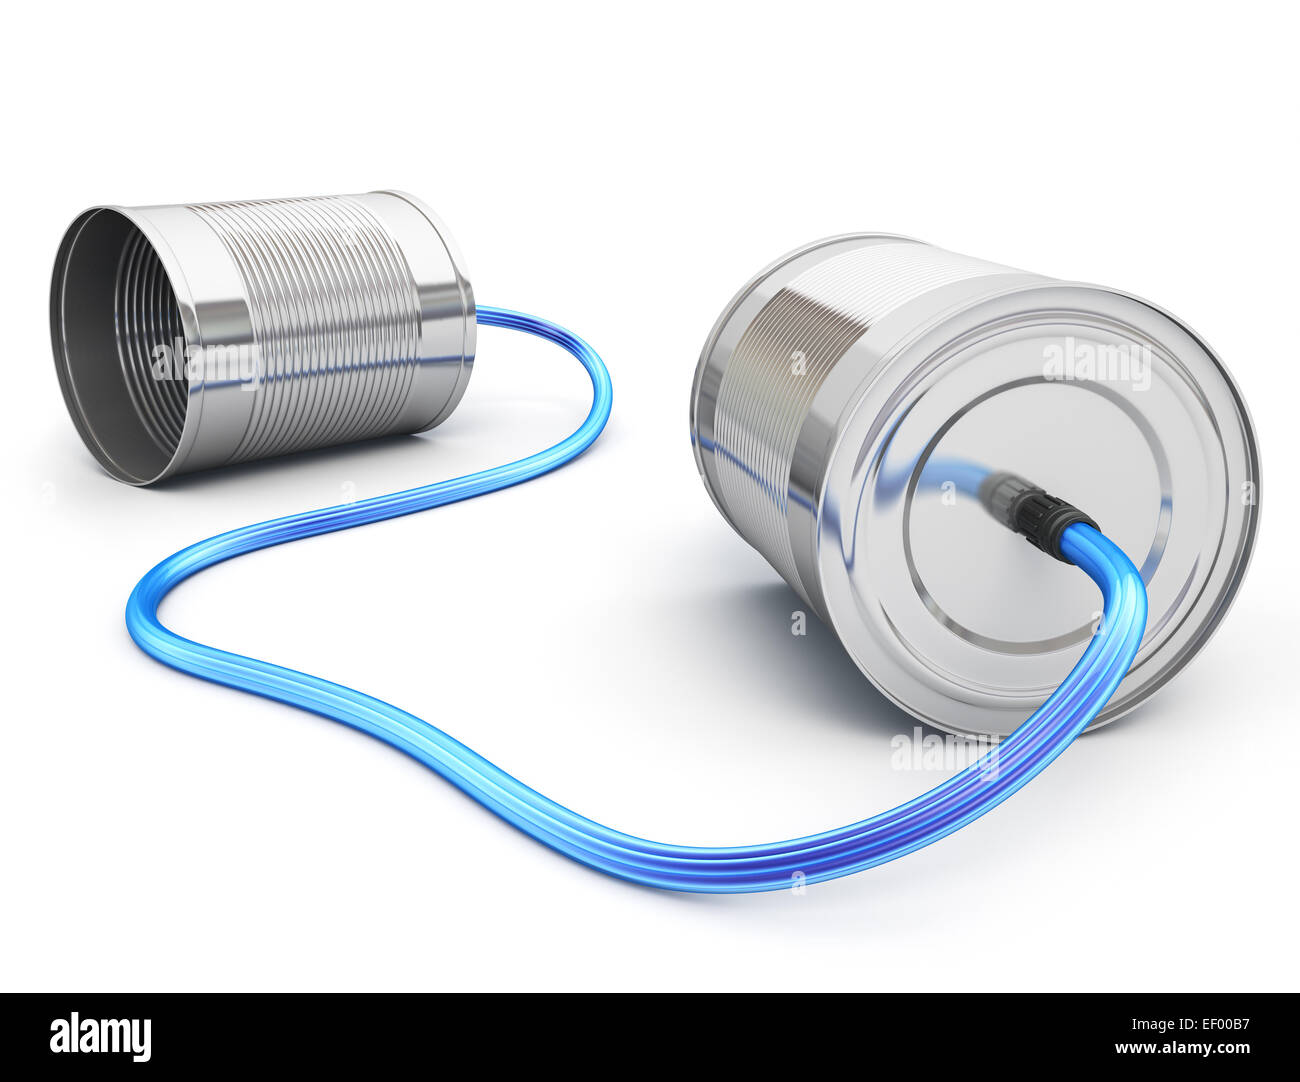 Tin can phone with fiber optic cable Stock Photo